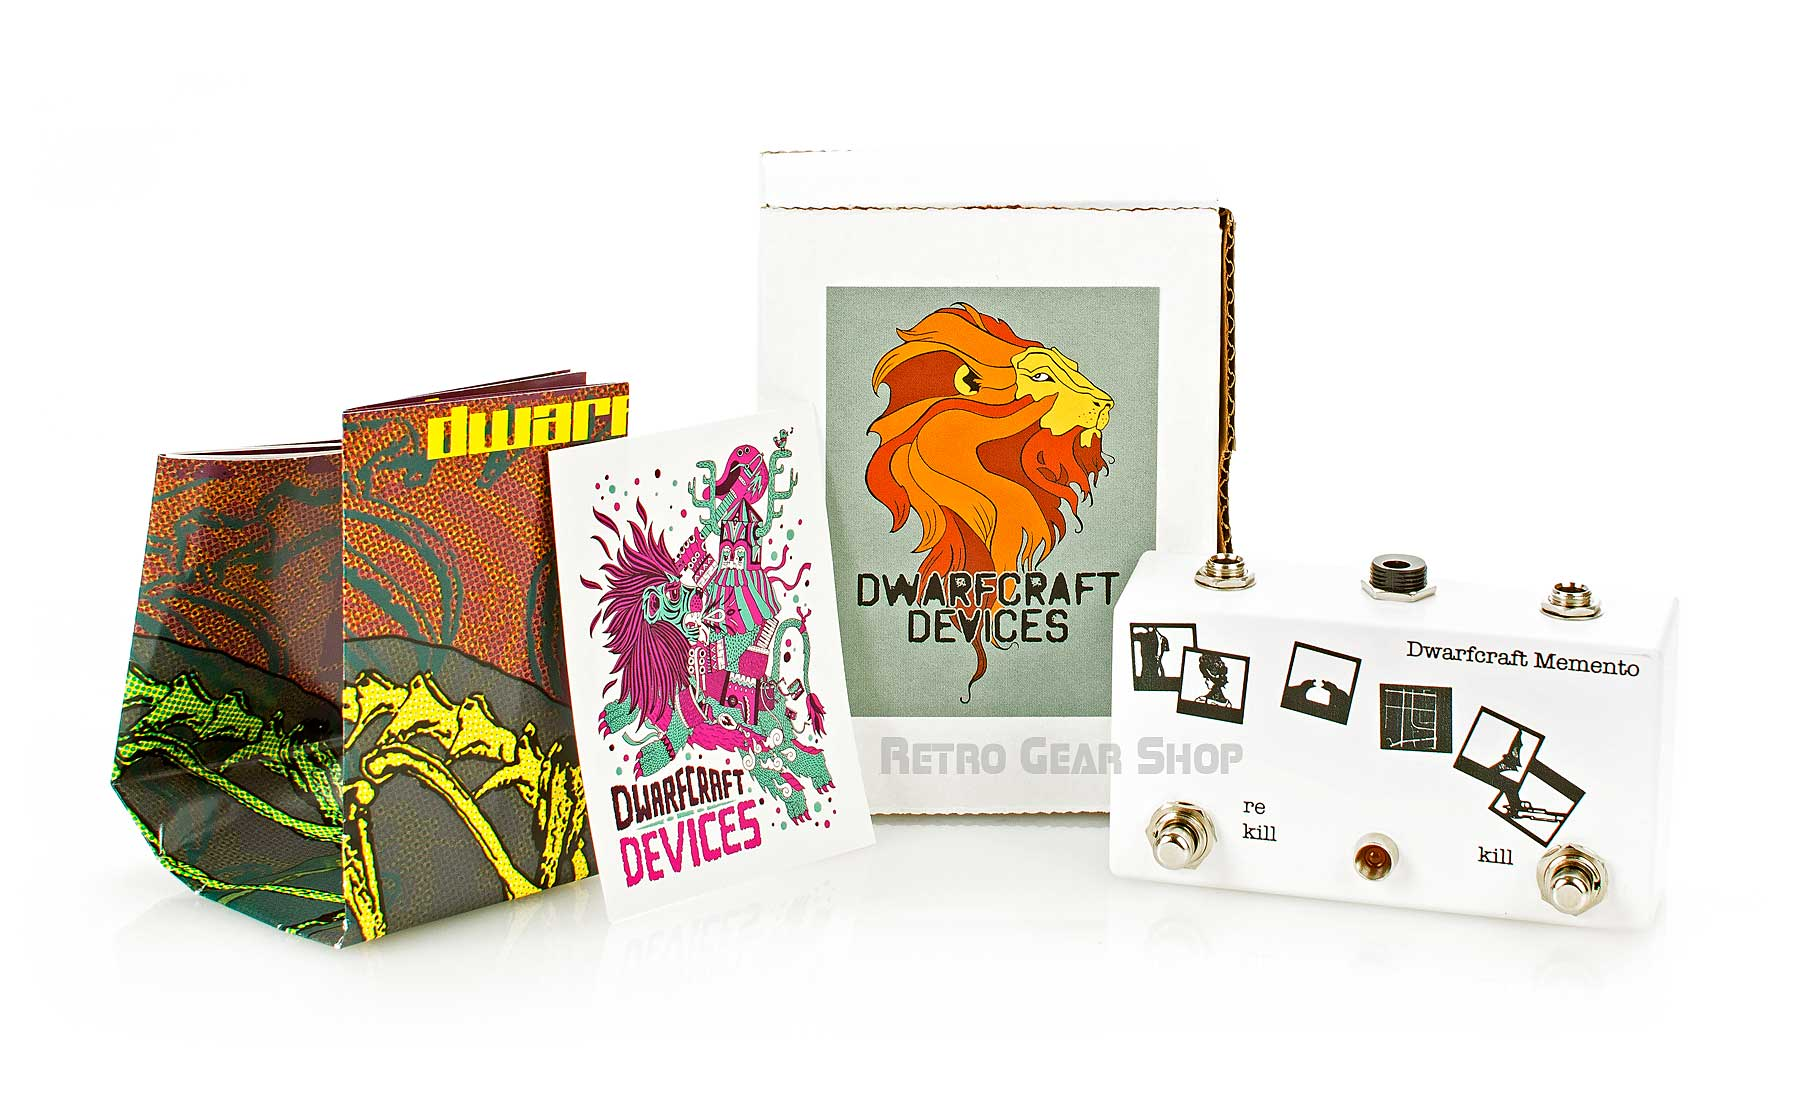 Dwarfcraft Devices Memento Box Extras